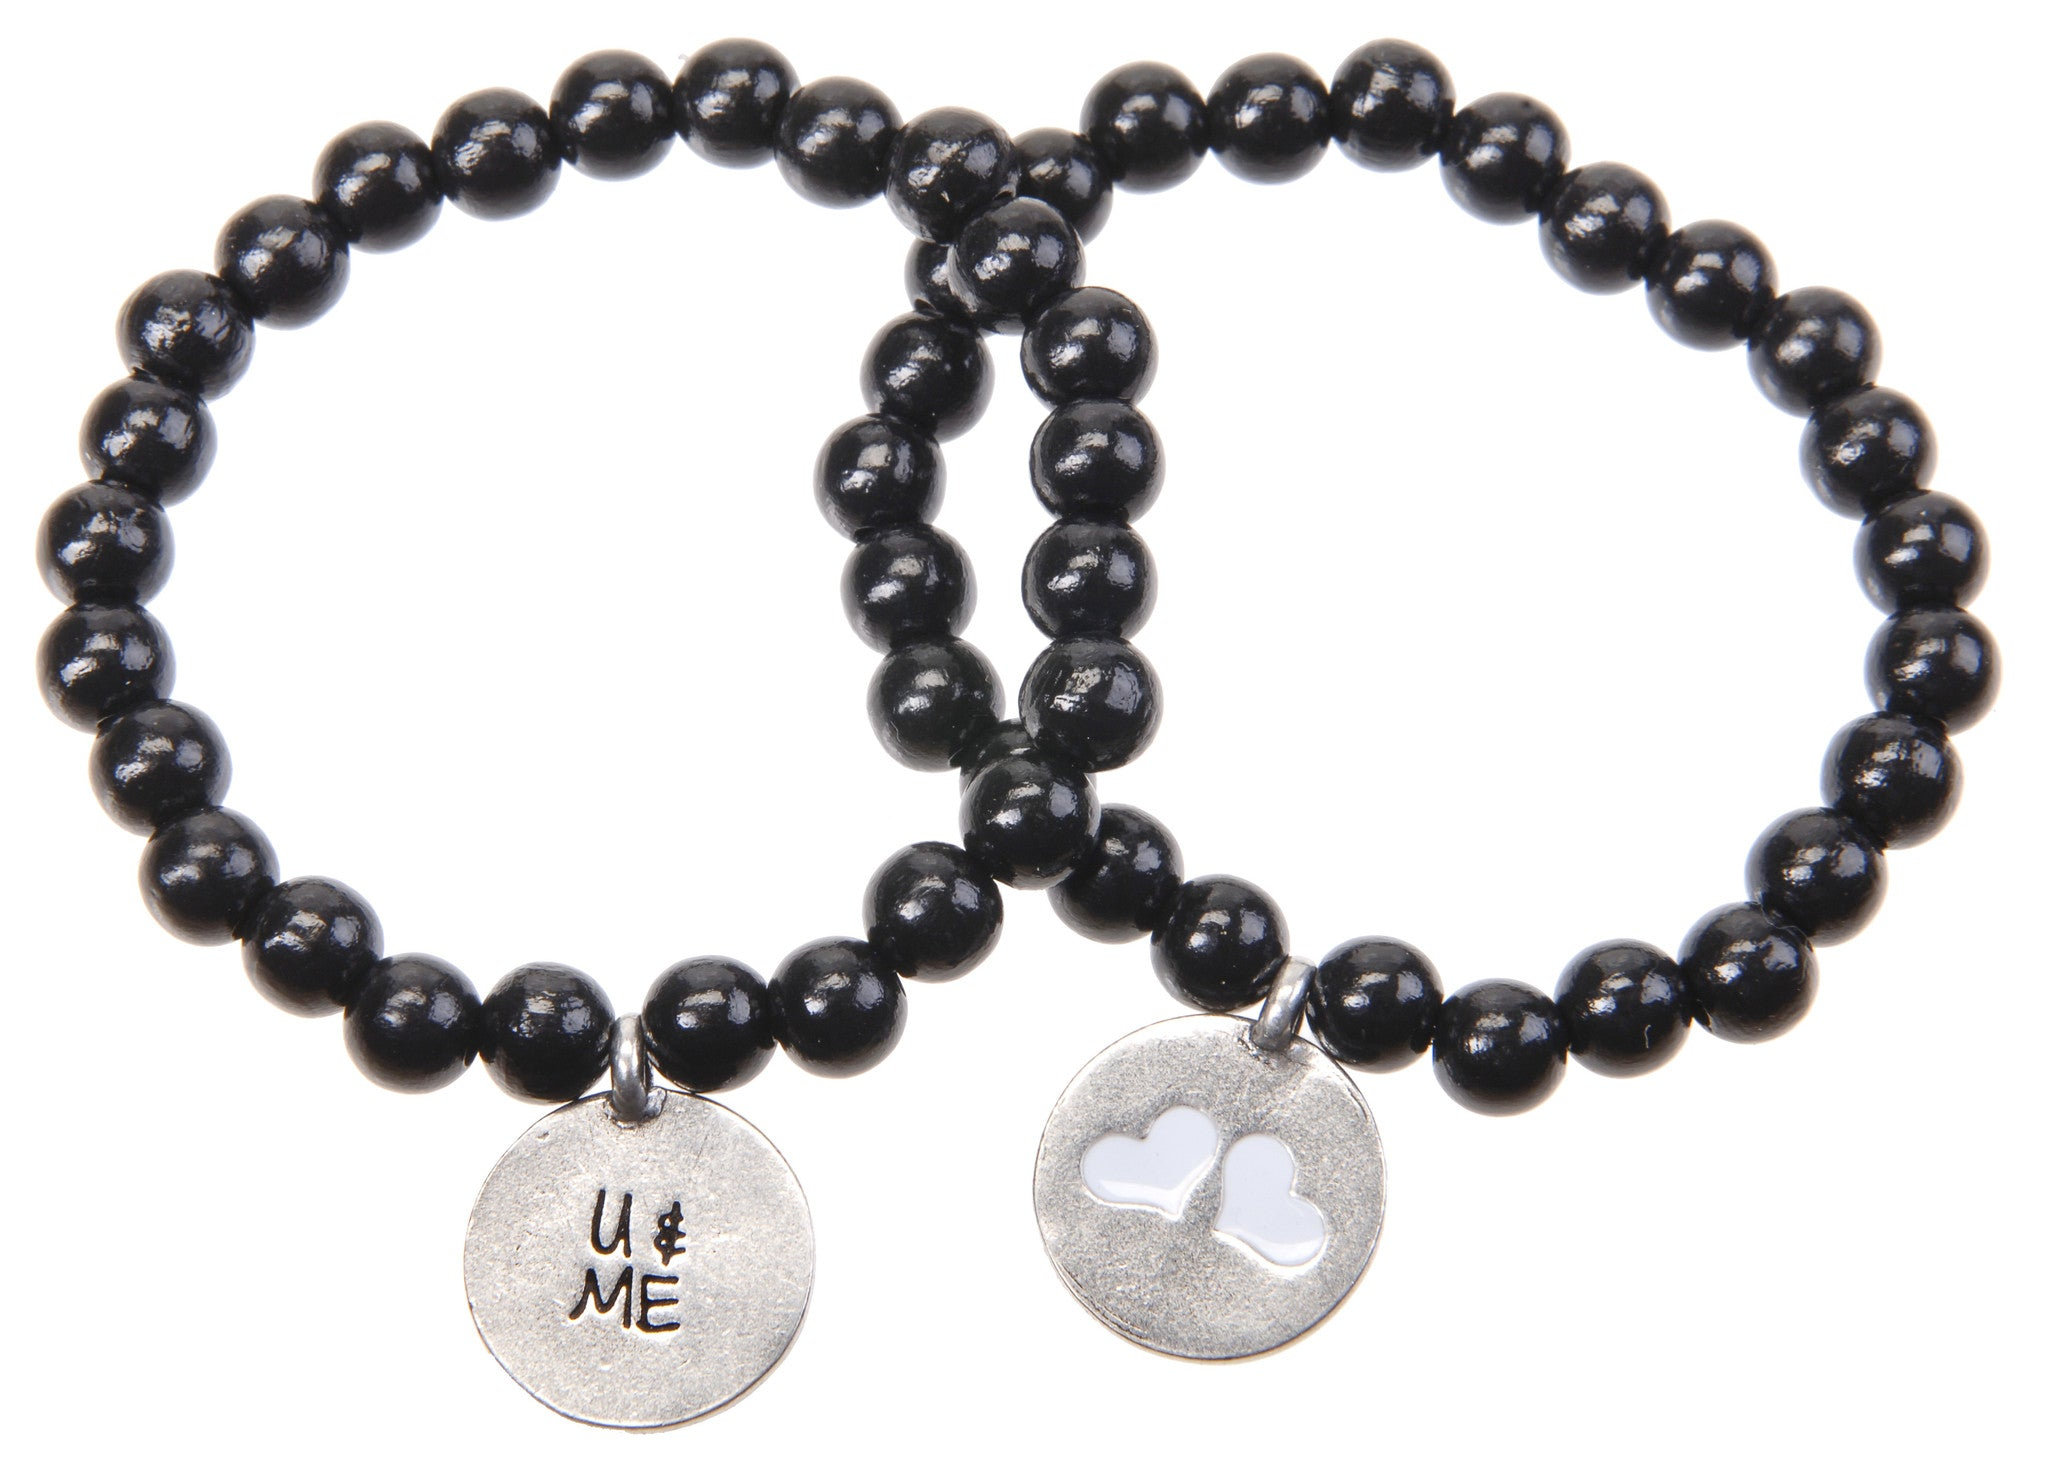 U & Me Wood Bead Bracelet - Whitney Howard Designs